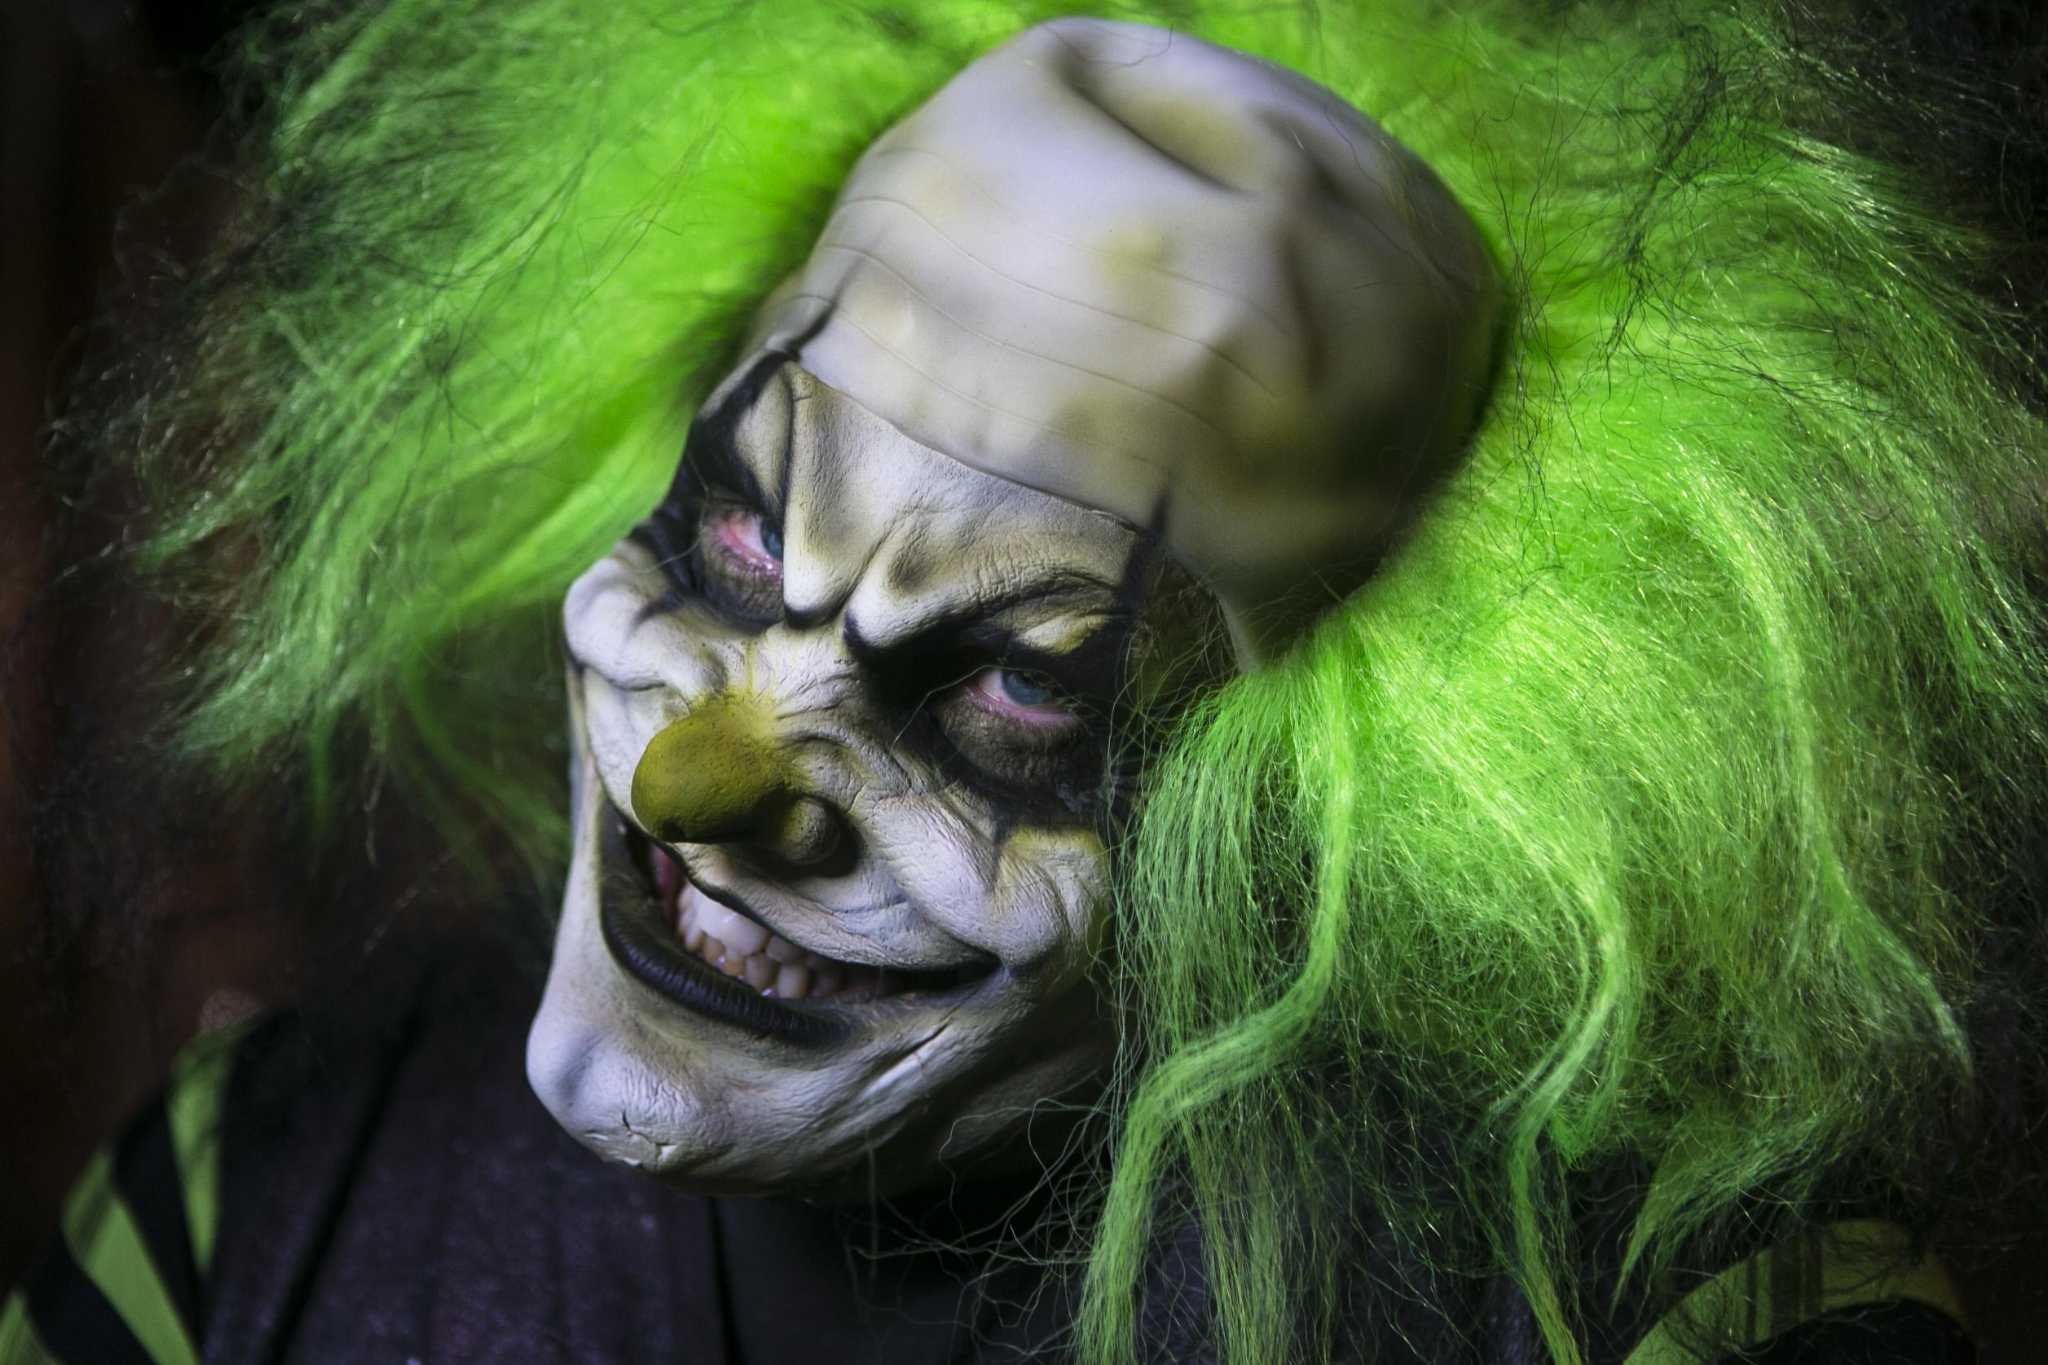 Here are some of the scariest attractions in and around Houston